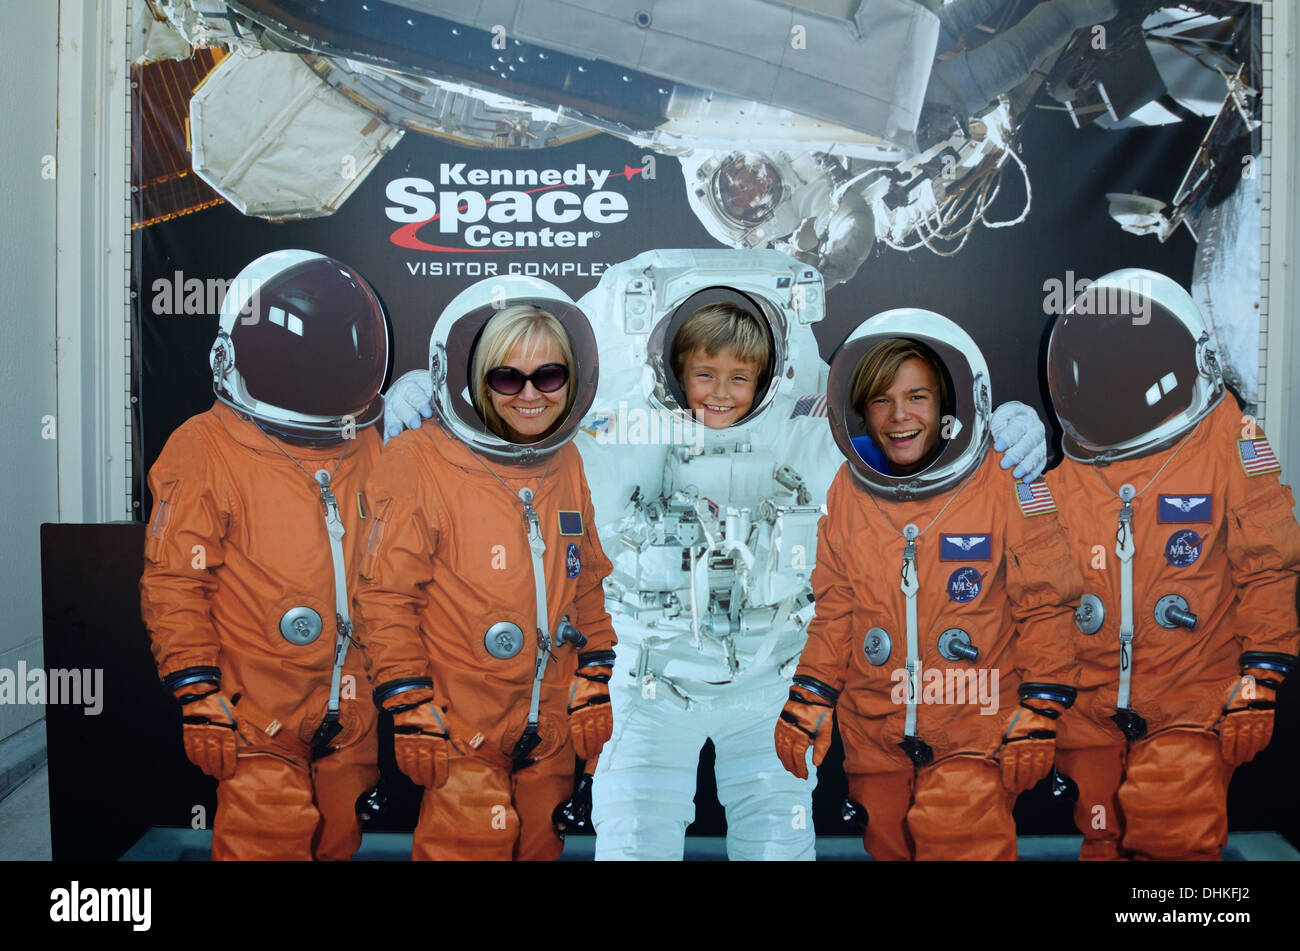 Photo wall with astronauts, John F. Kennedy Space Center, Cape Canaveral, Florida, USA - Stock Image